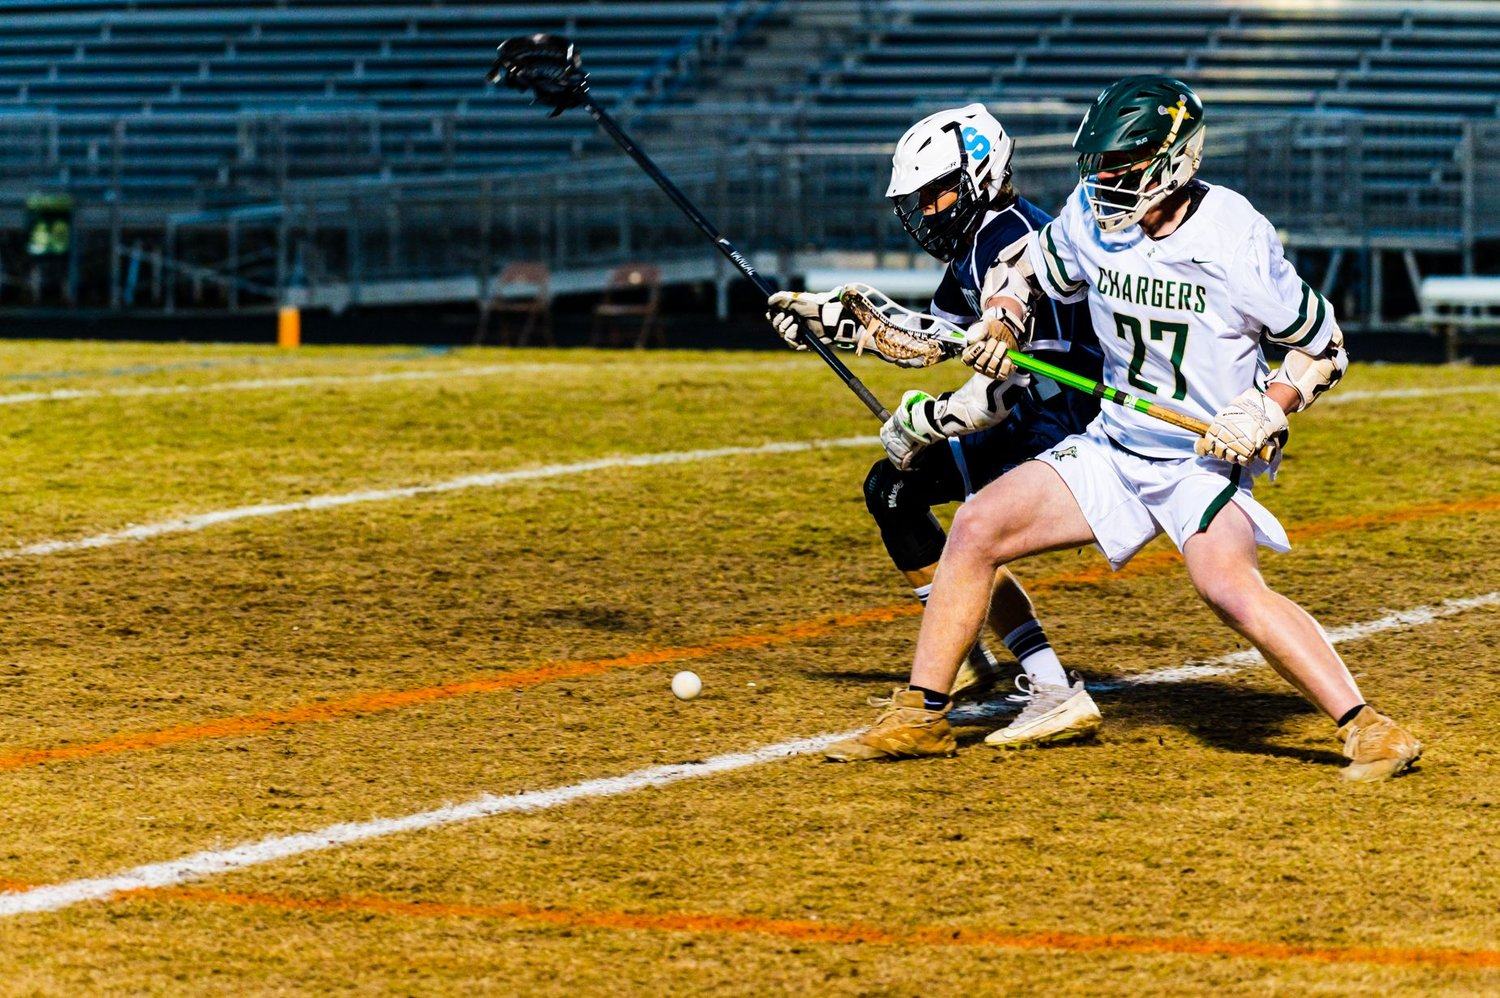 Northwood senior midfielder Brayden Foege (27) fights for a ground ball during his team's 17-8 win over Swansboro in the first round of the playoffs.